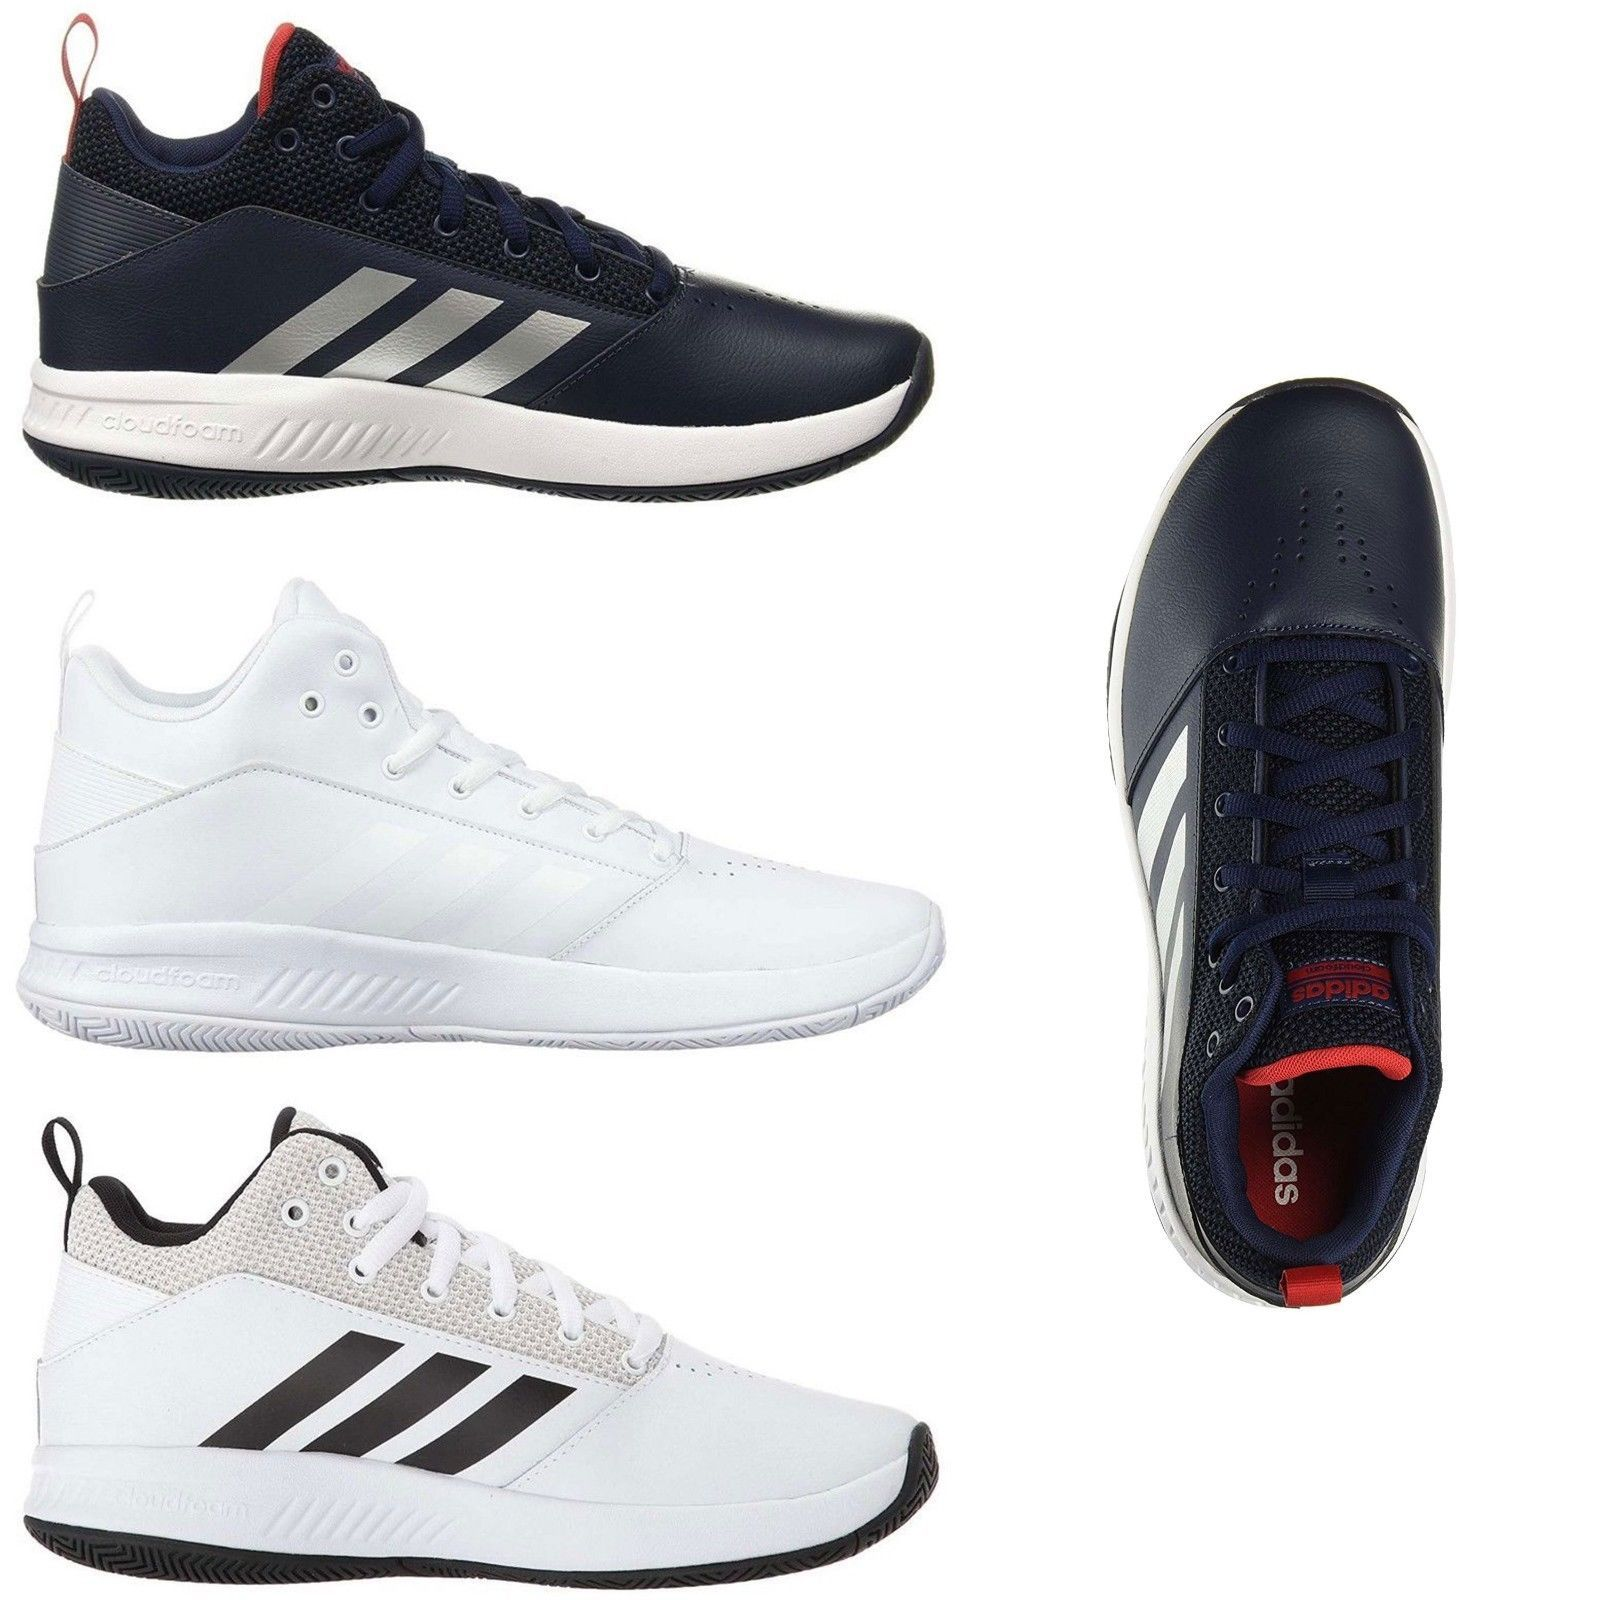 new style 61367 575a3 Mens Shoes 93427  Adidas Men S Athletic Sneakers Cloudfoam Ilation 2.0 Lace  Up Basketball Shoes -  BUY IT NOW ONLY   59.95 on  eBay  shoes  adidas   athletic ...